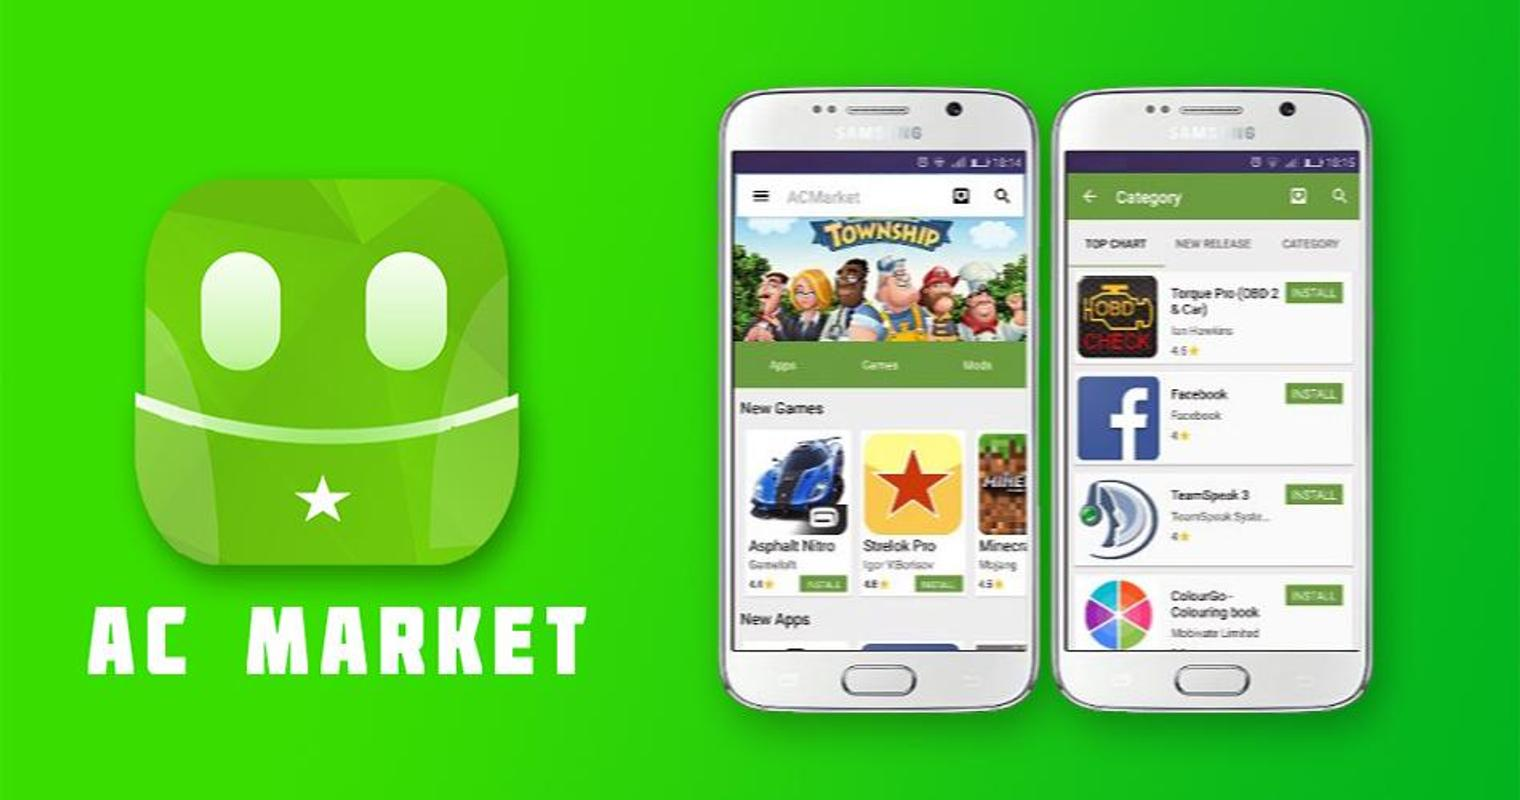 1mobile market android application download